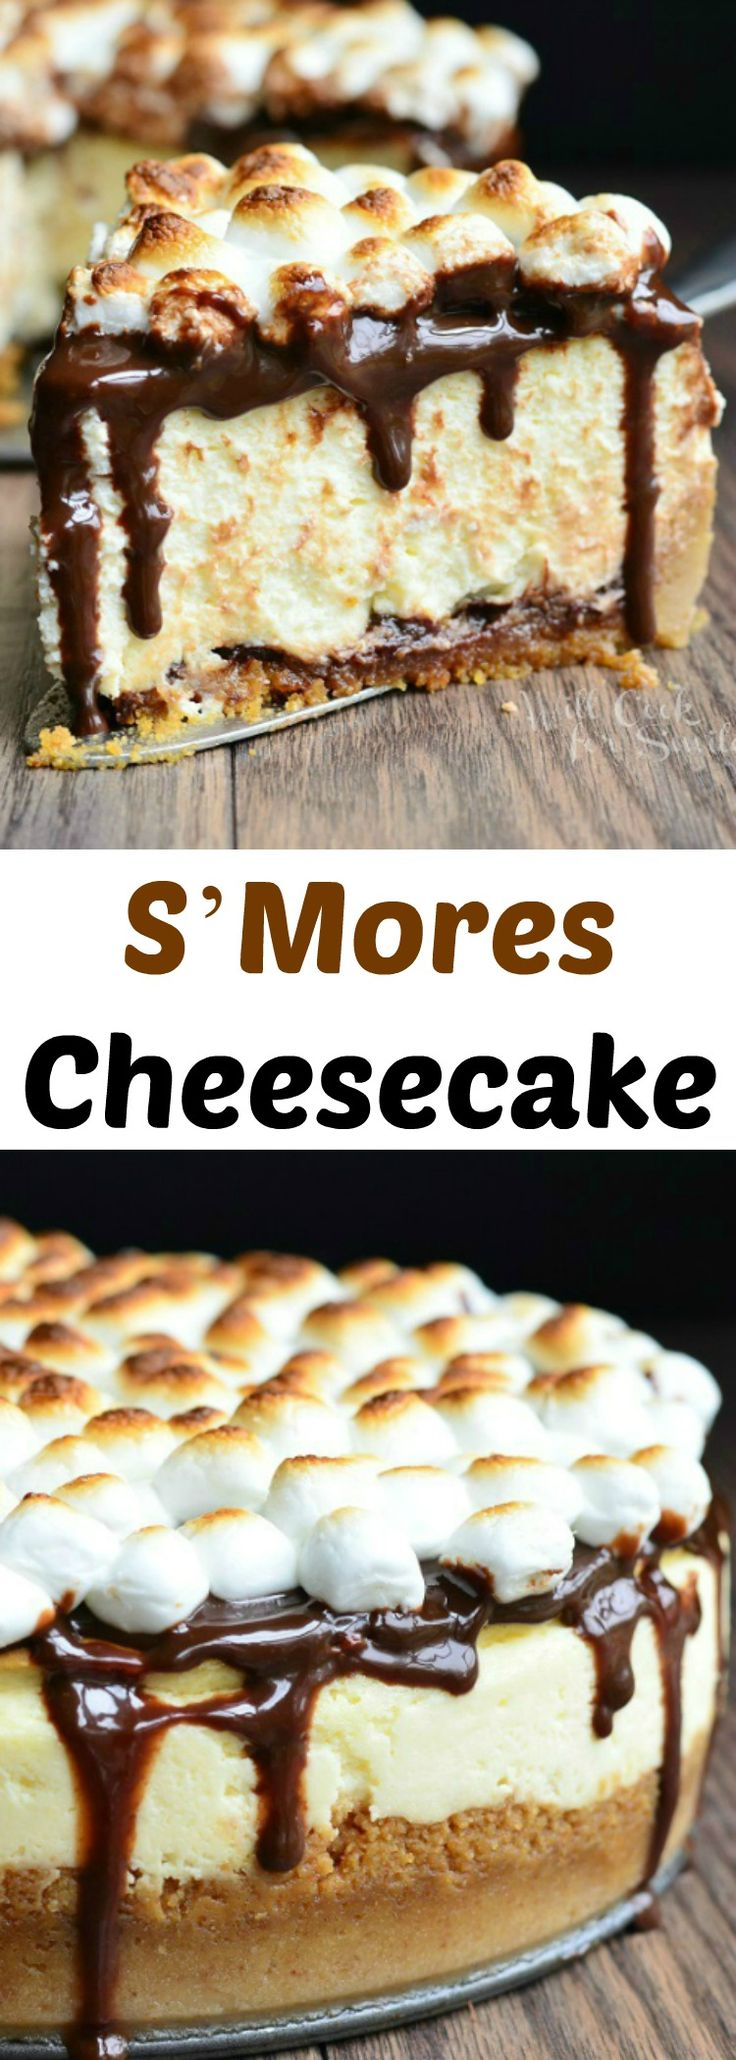 THE S�Mores Cheesecake Recipe. Smooth cheesecake made with a layer of chocolate and marshmallows on the bottom and topped with hot fudge sauce and toasted marshmallows.